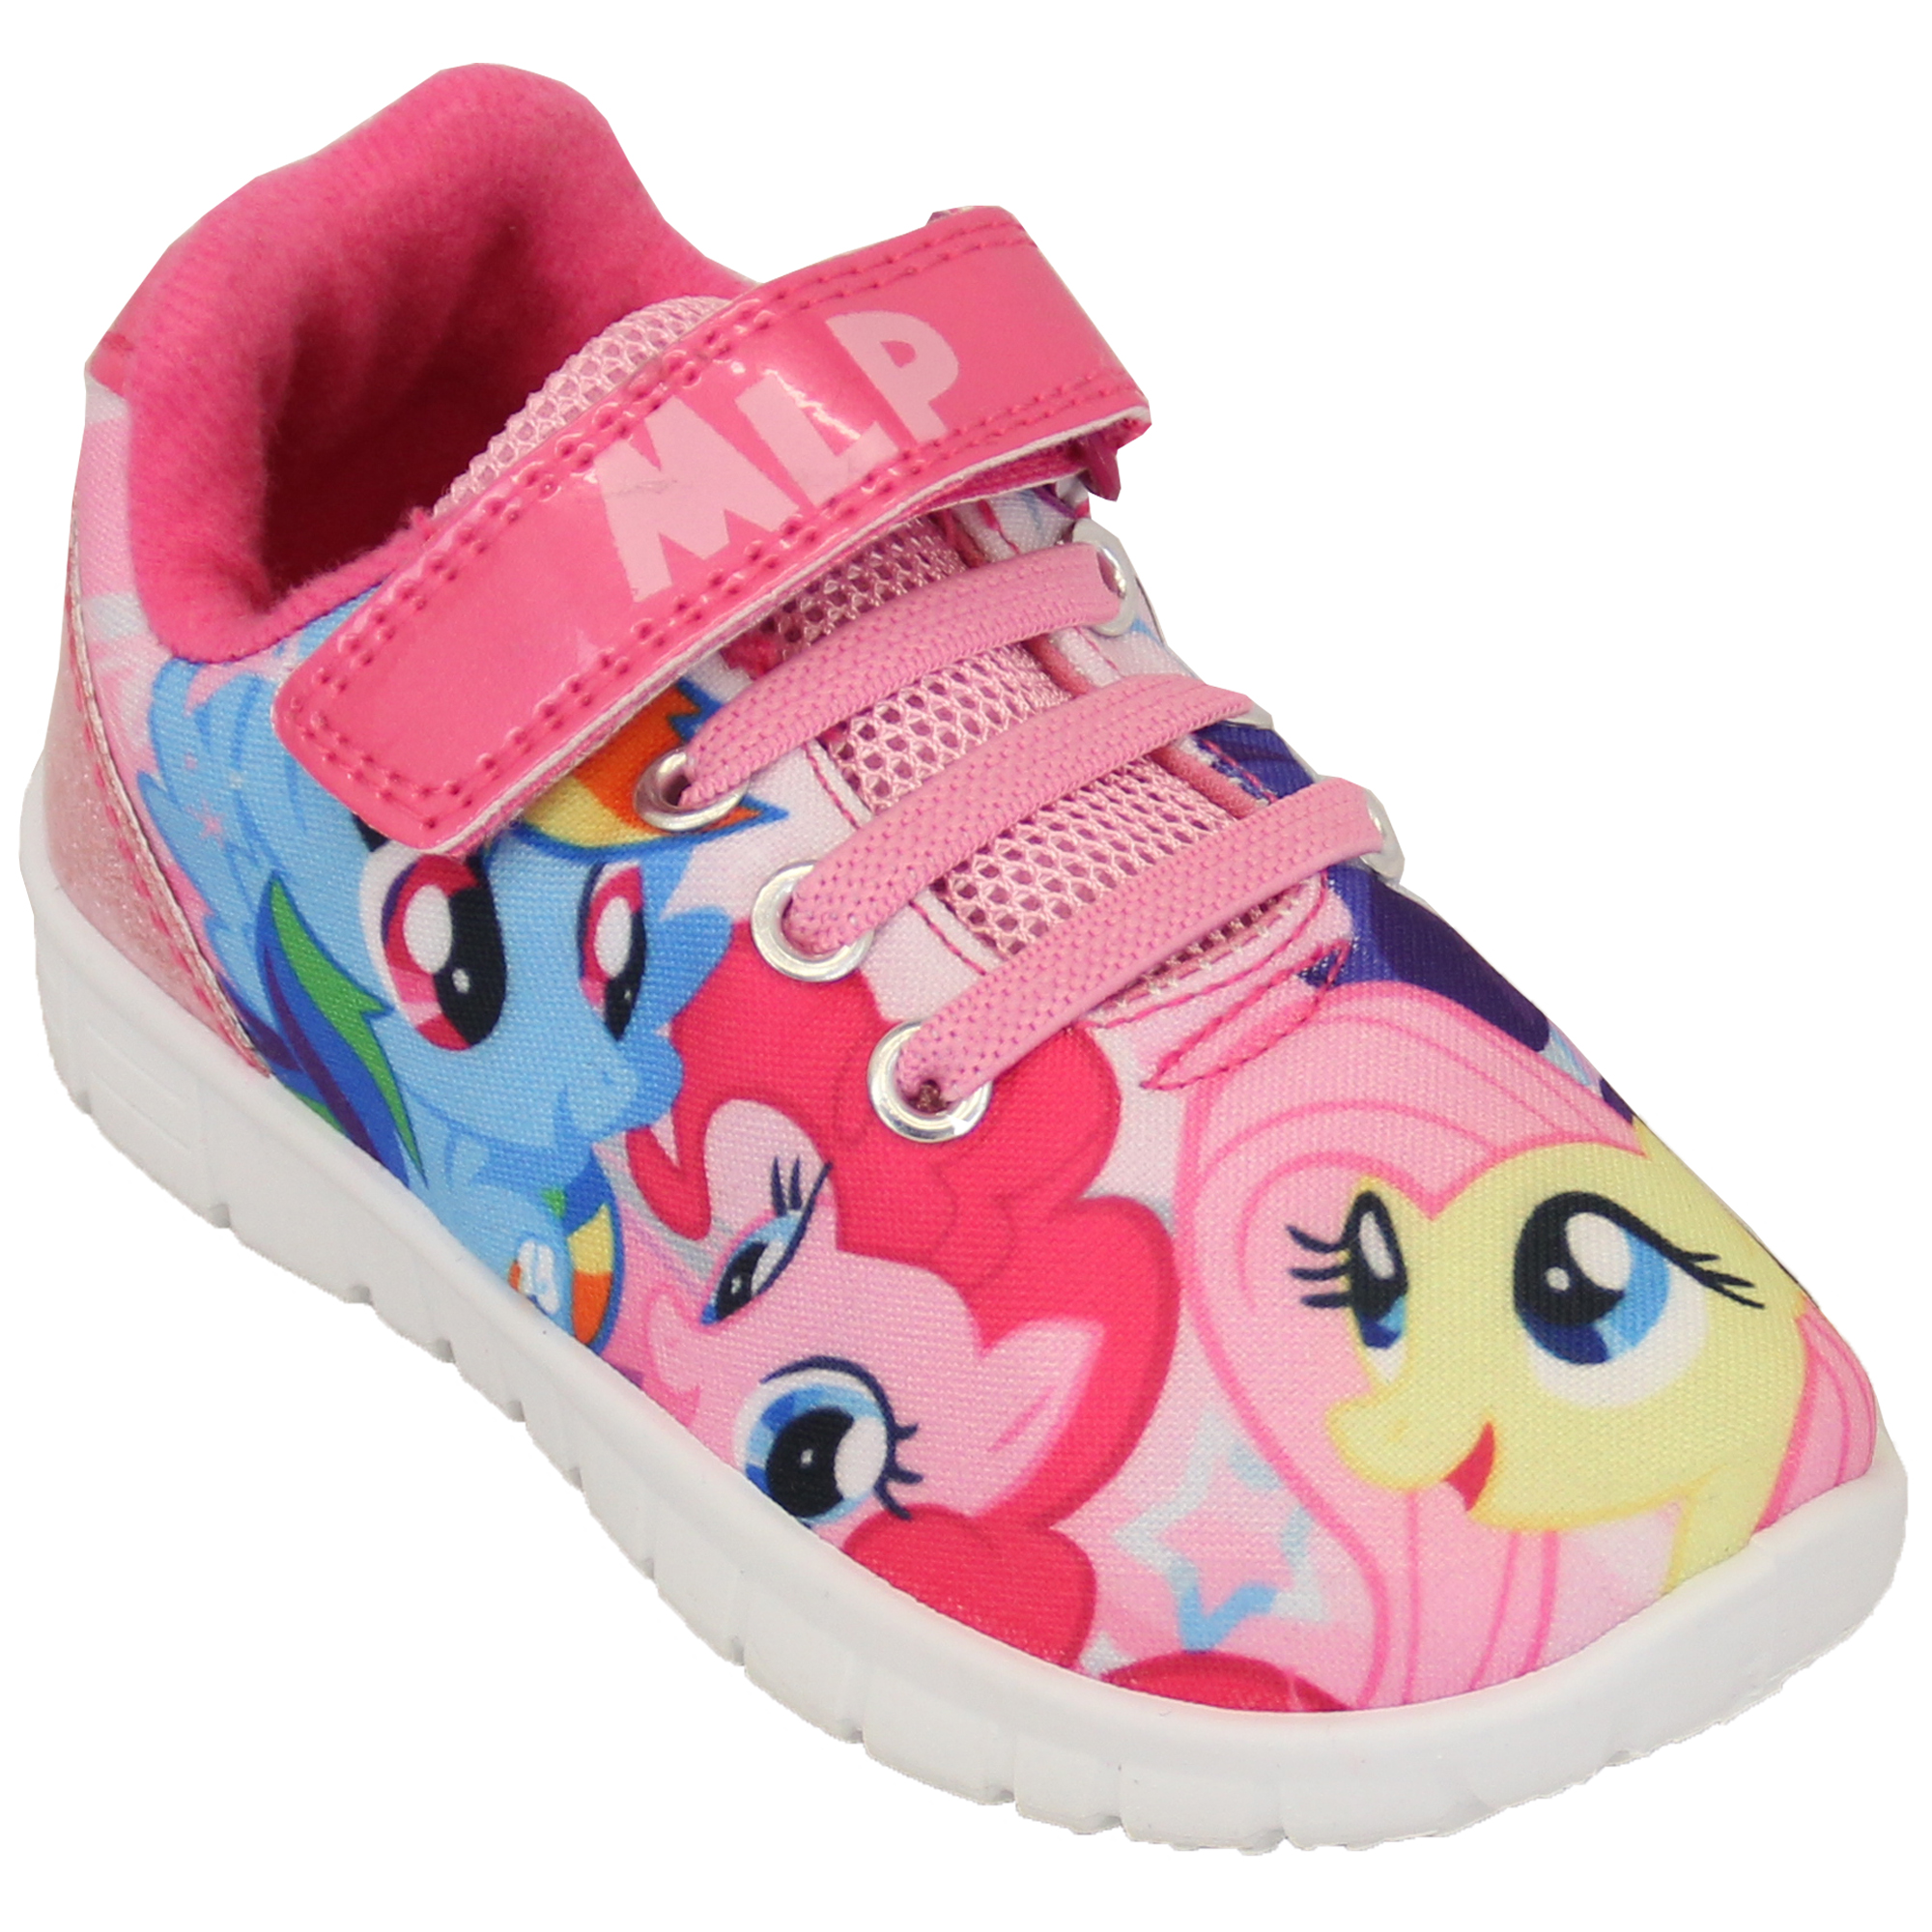 Find my little pony at Macy's Macy's Presents: The Edit - A curated mix of fashion and inspiration Check It Out Free Shipping with $75 purchase + Free Store Pickup.